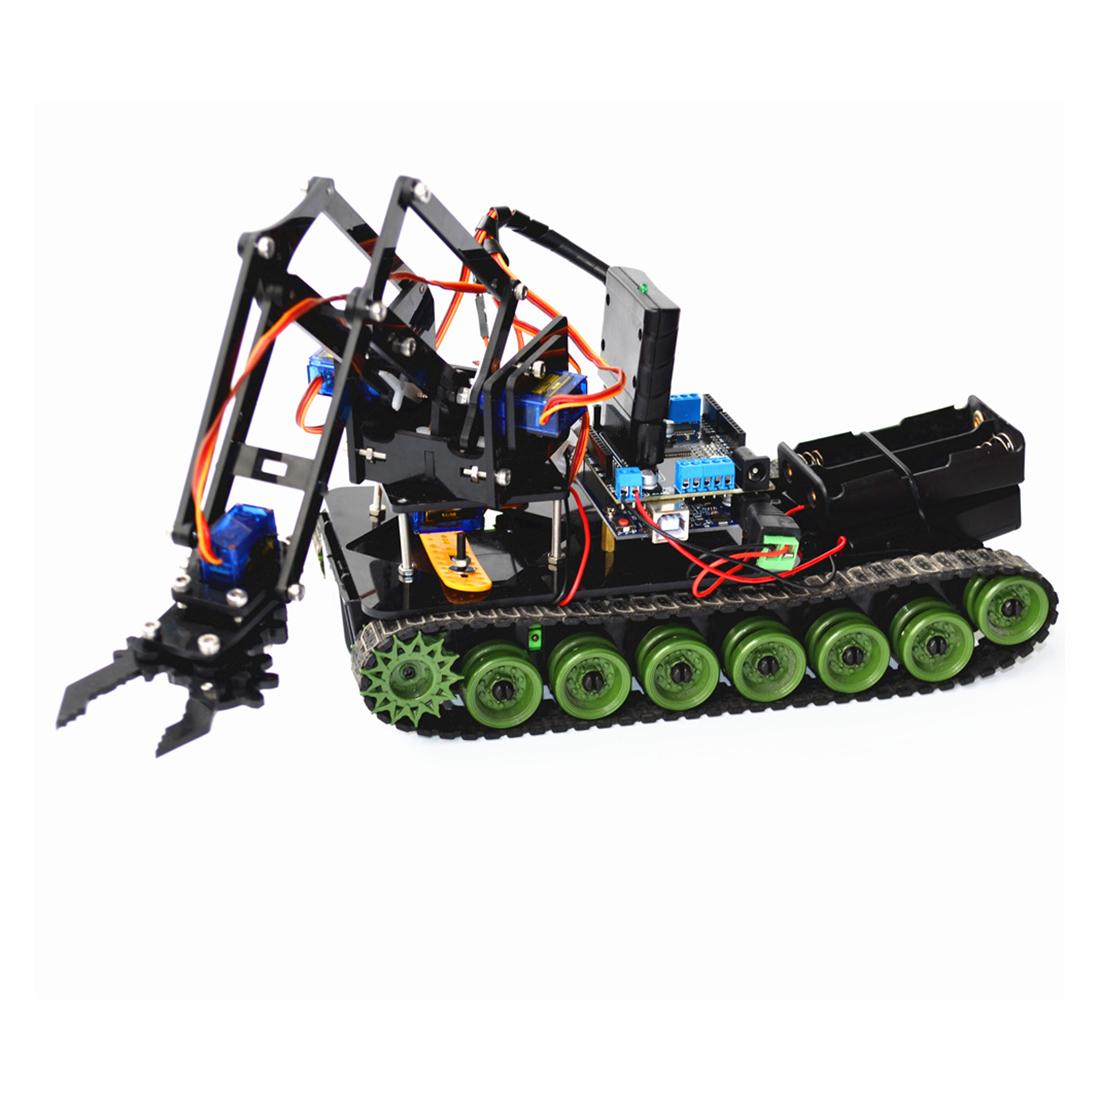 New DIY Programmable Arduino Robot Kit Made With Plastic And Metal Material For Arduino